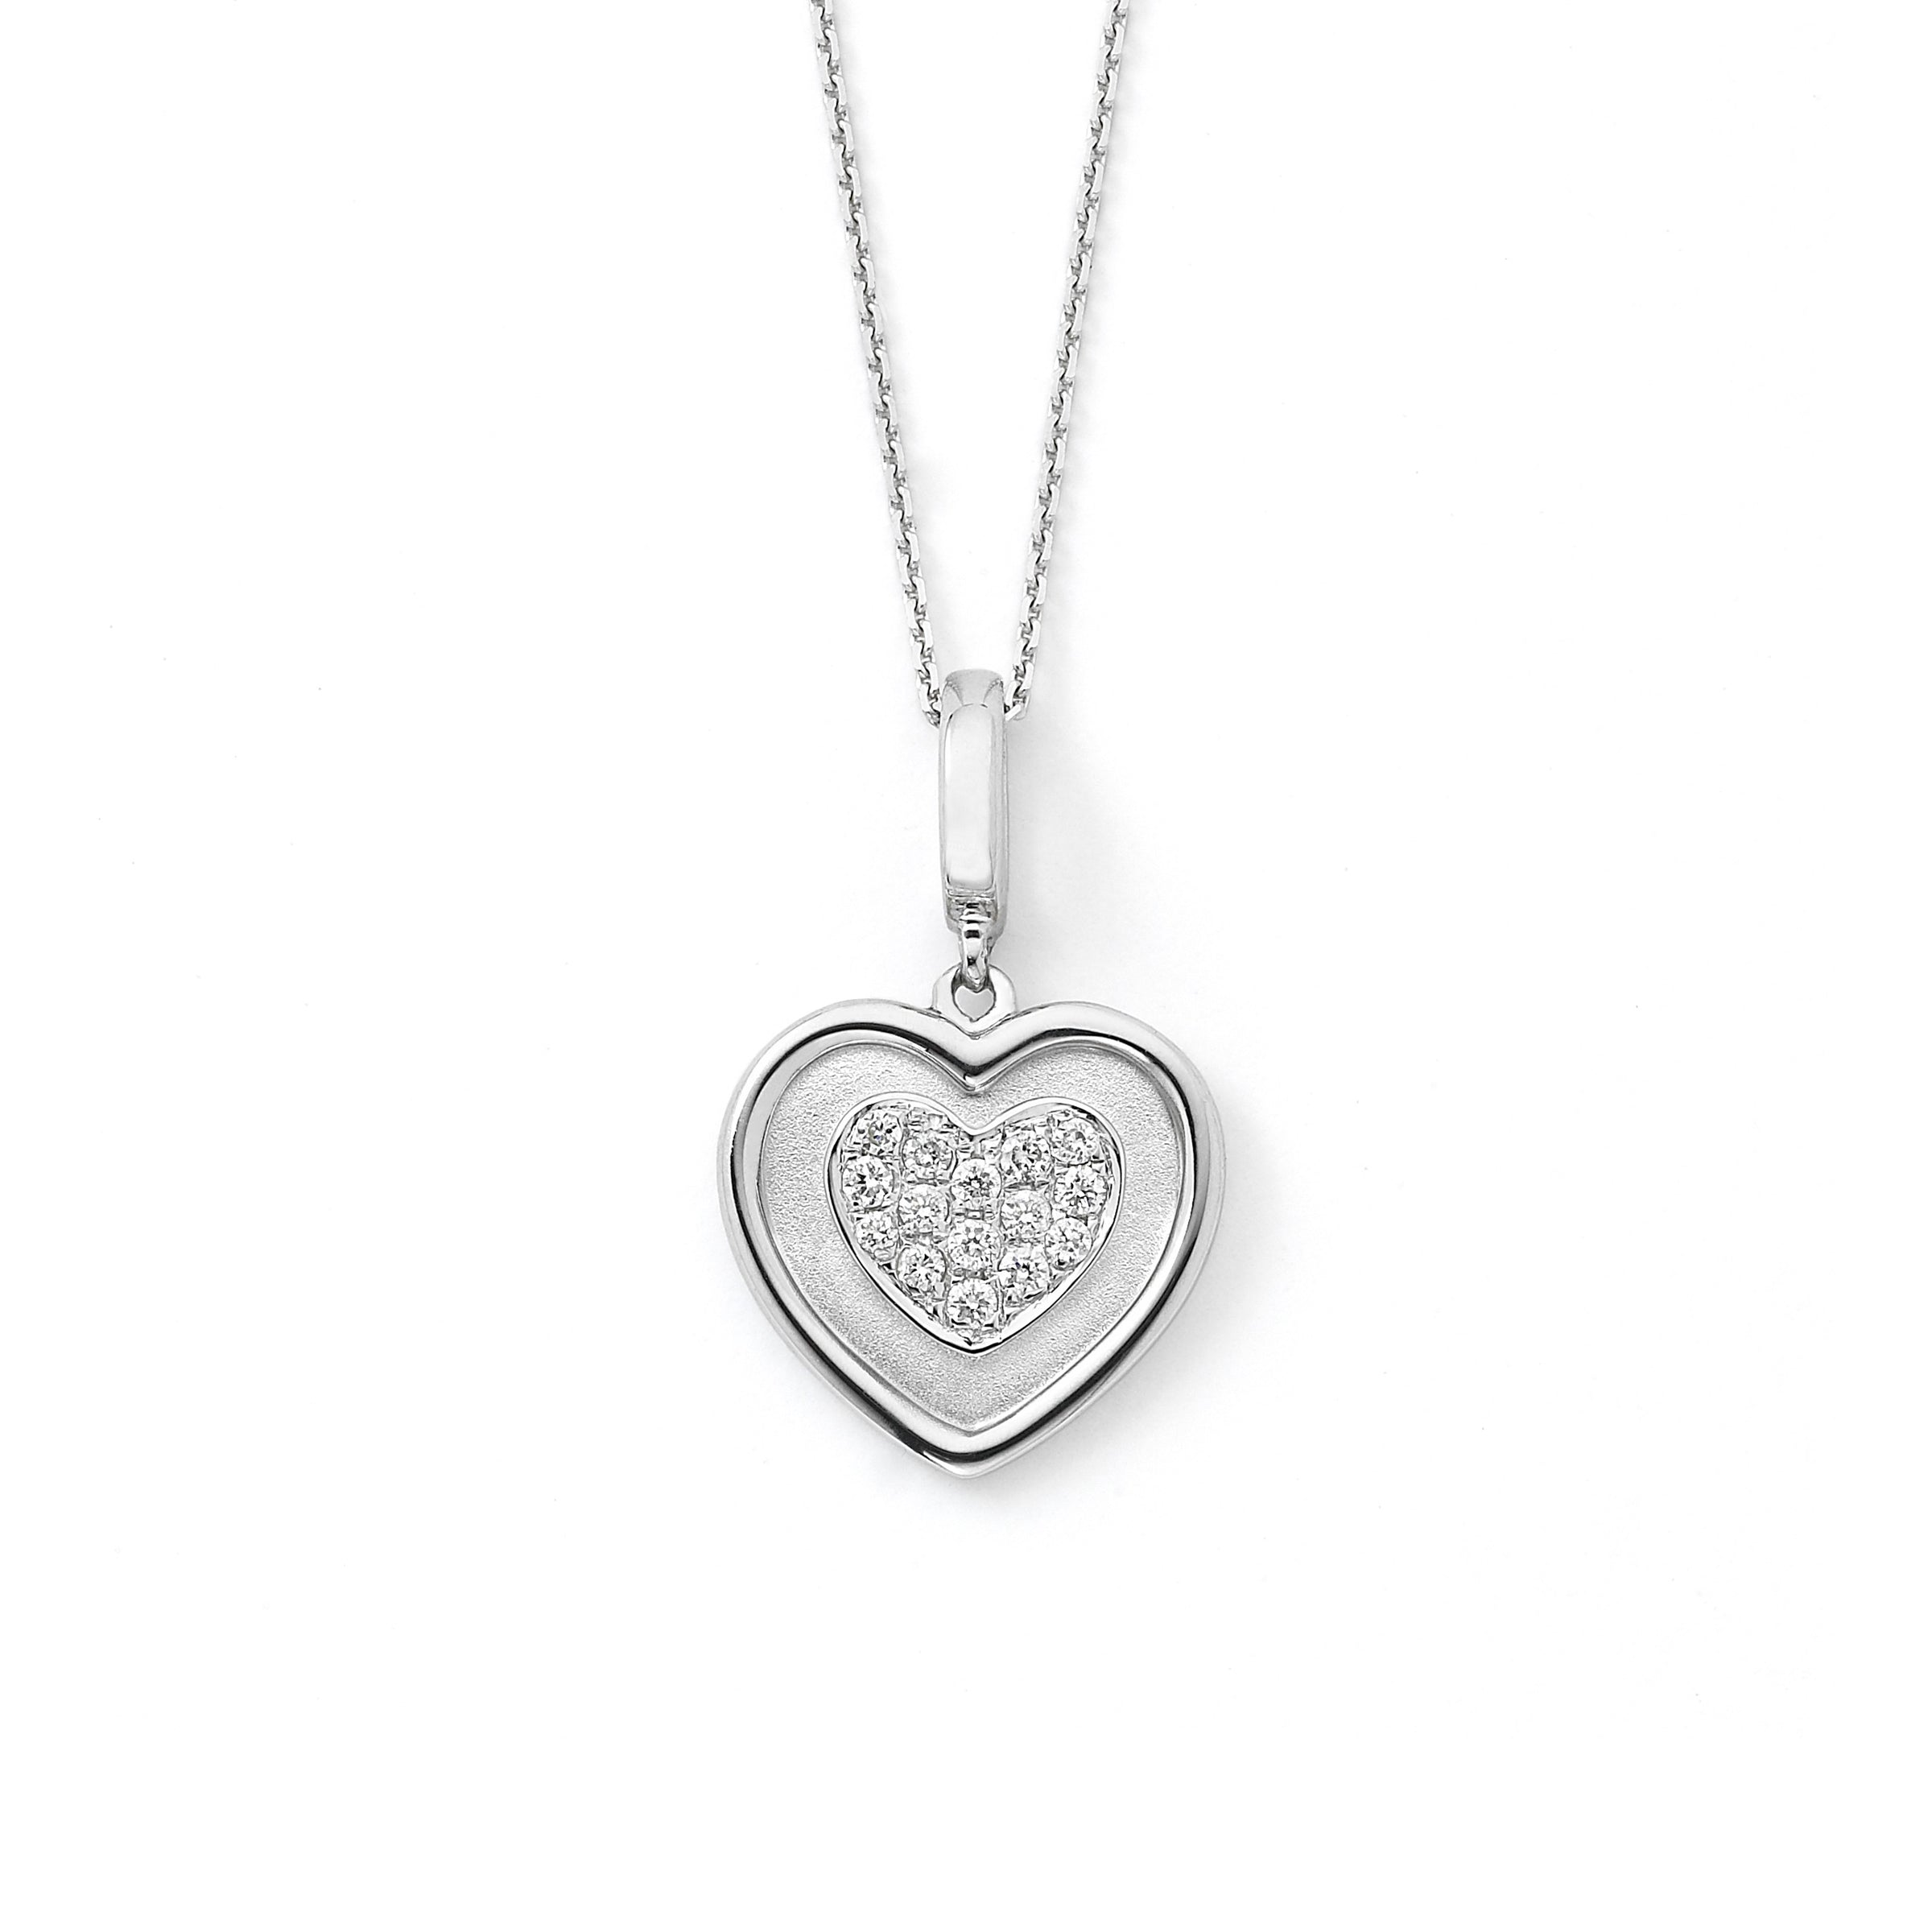 Diamond Heart Pendant, Matte and High Polish, 14K White Gold, 16 Inch Chain